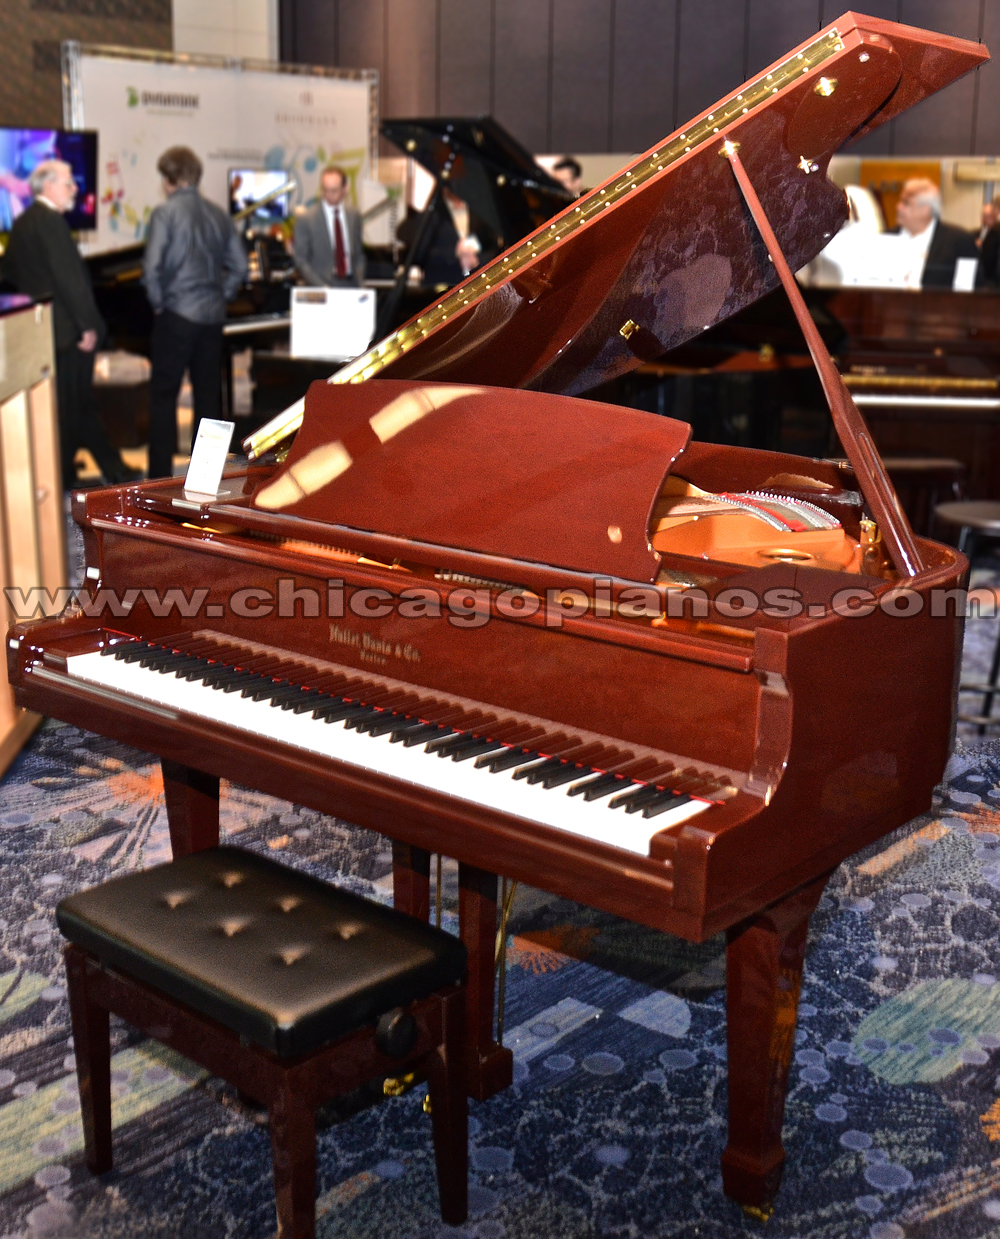 Hallet Davis HS-148 Mahogany Polish Grand Piano